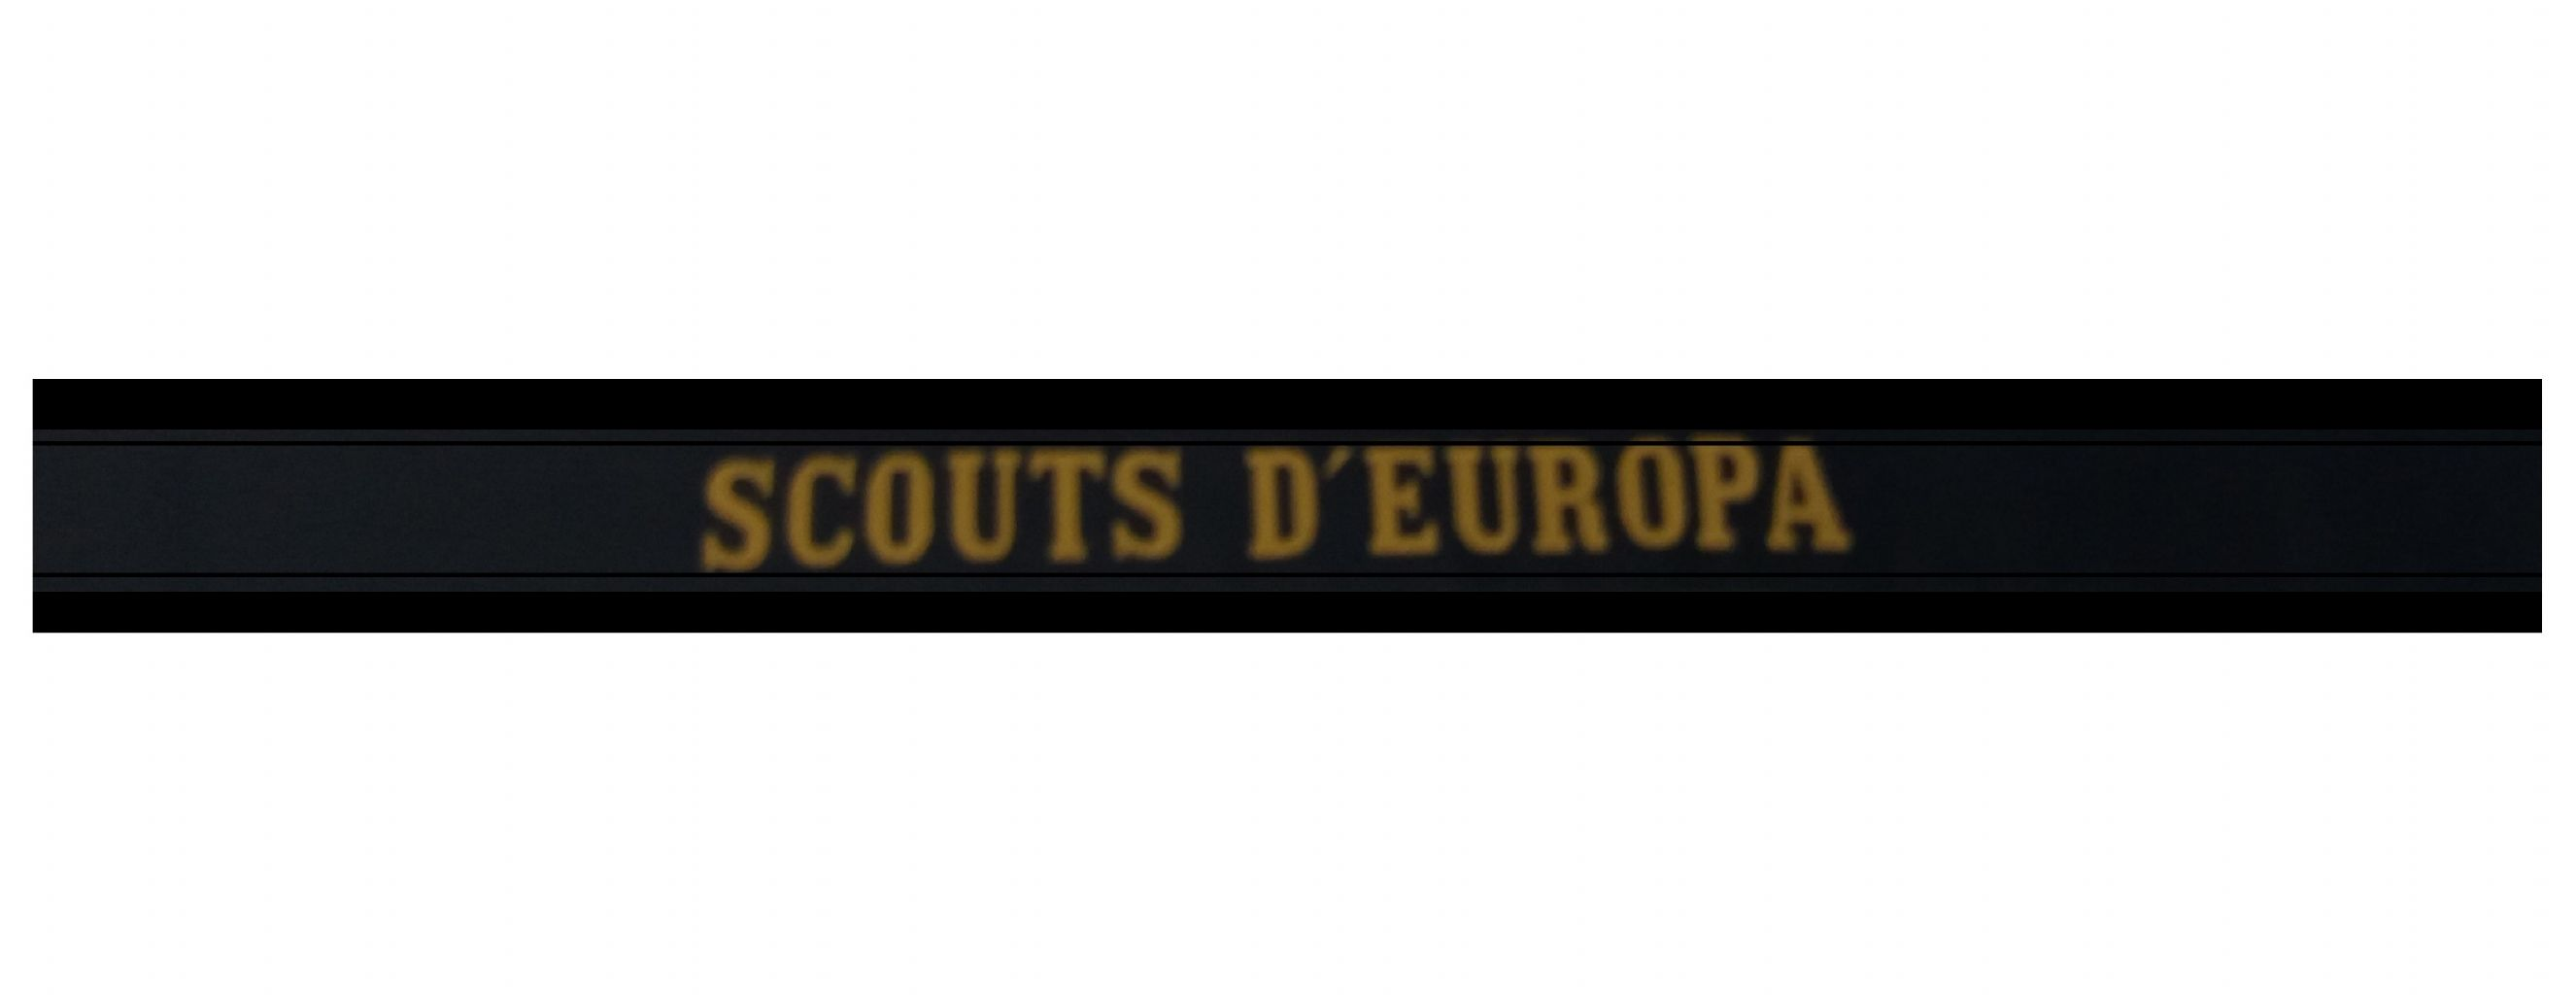 NAUTICAL SCOUTS OF EUROPE